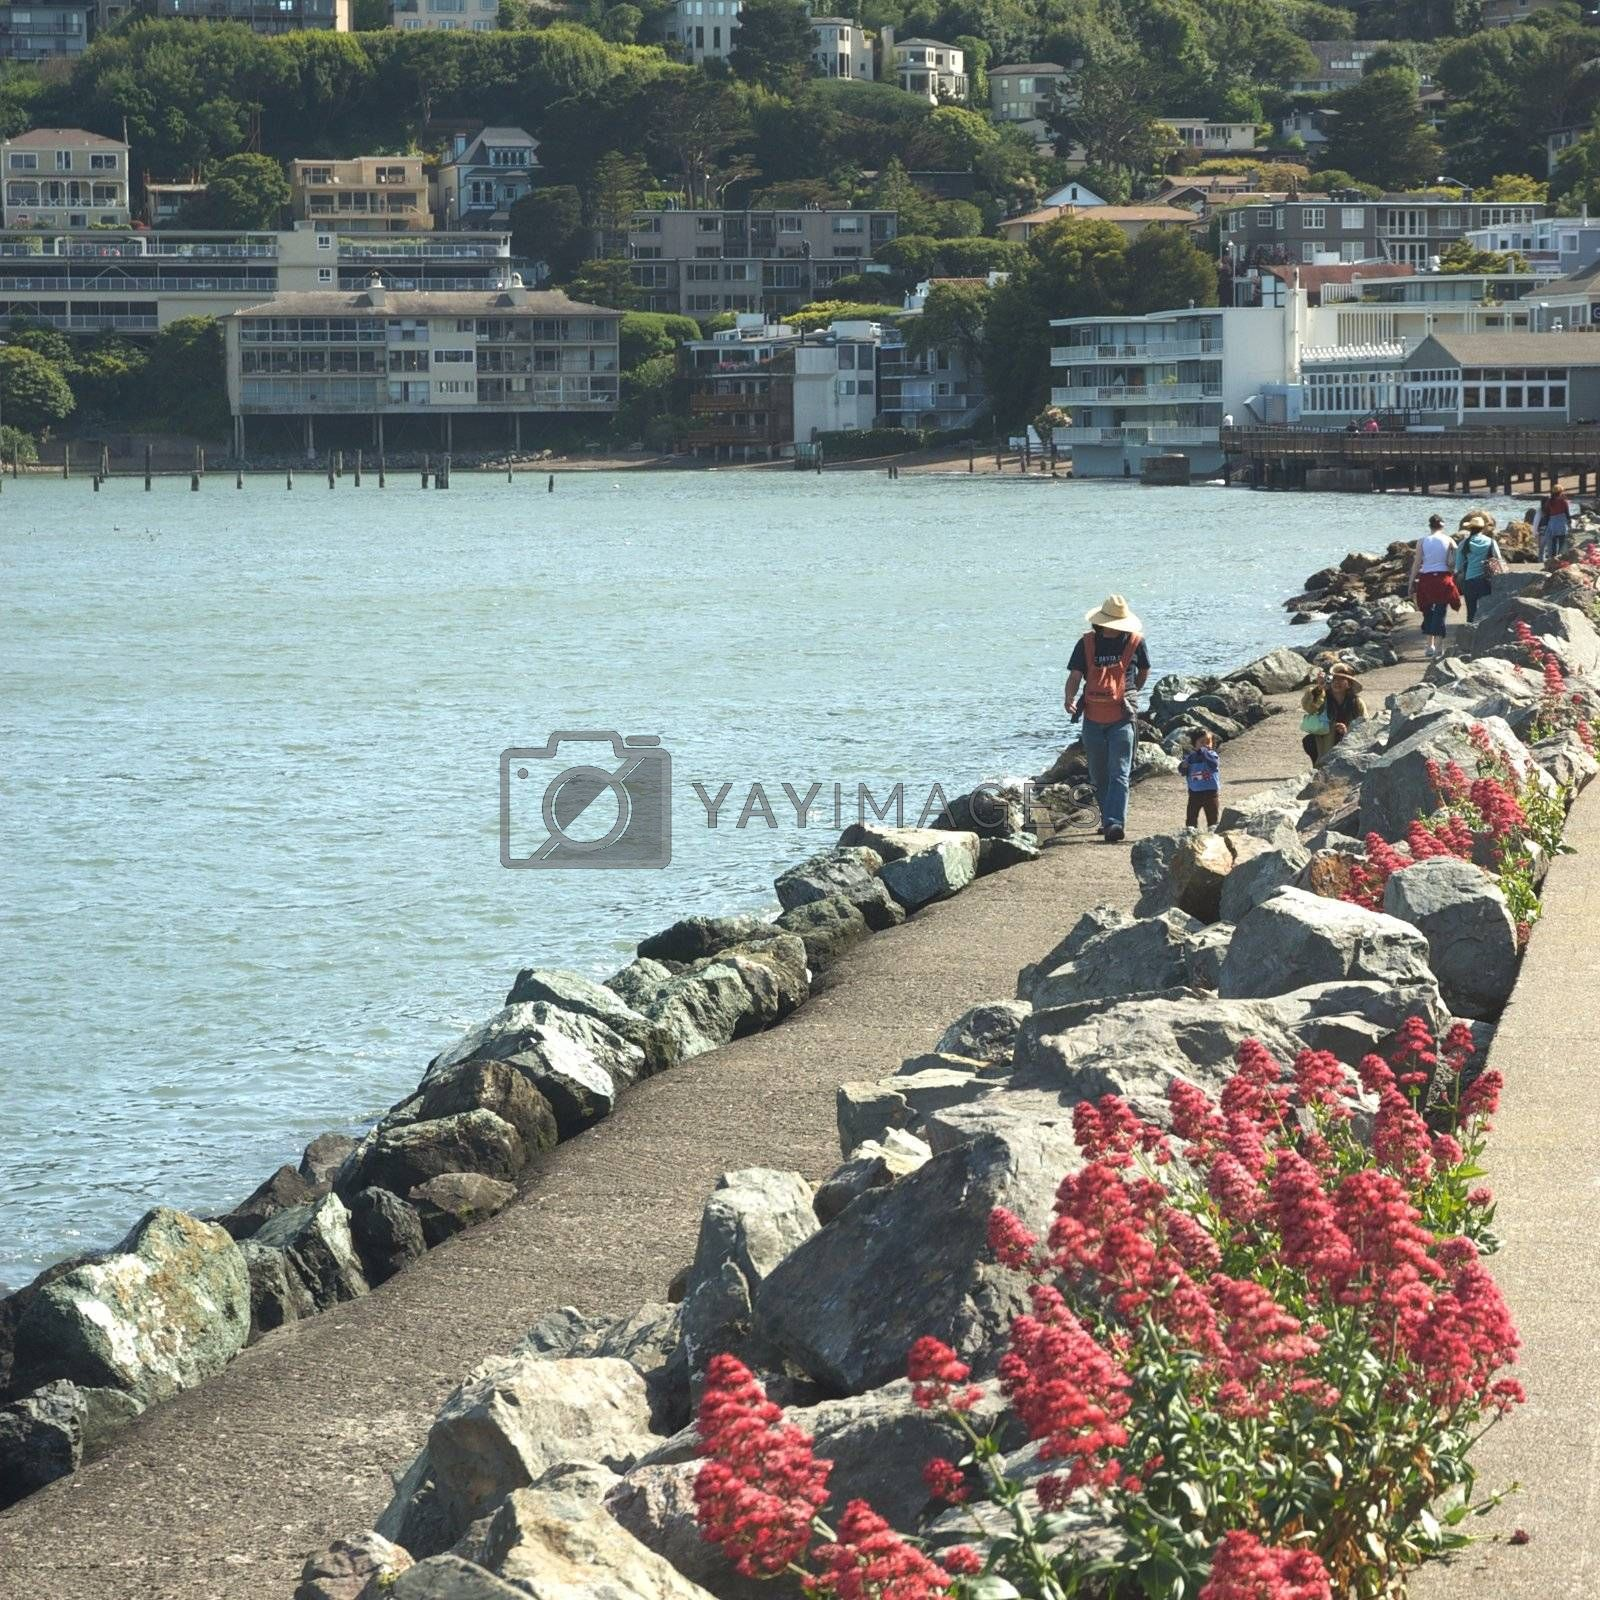 Sausalito, a town on San Francisco Bay in Marin County, USA